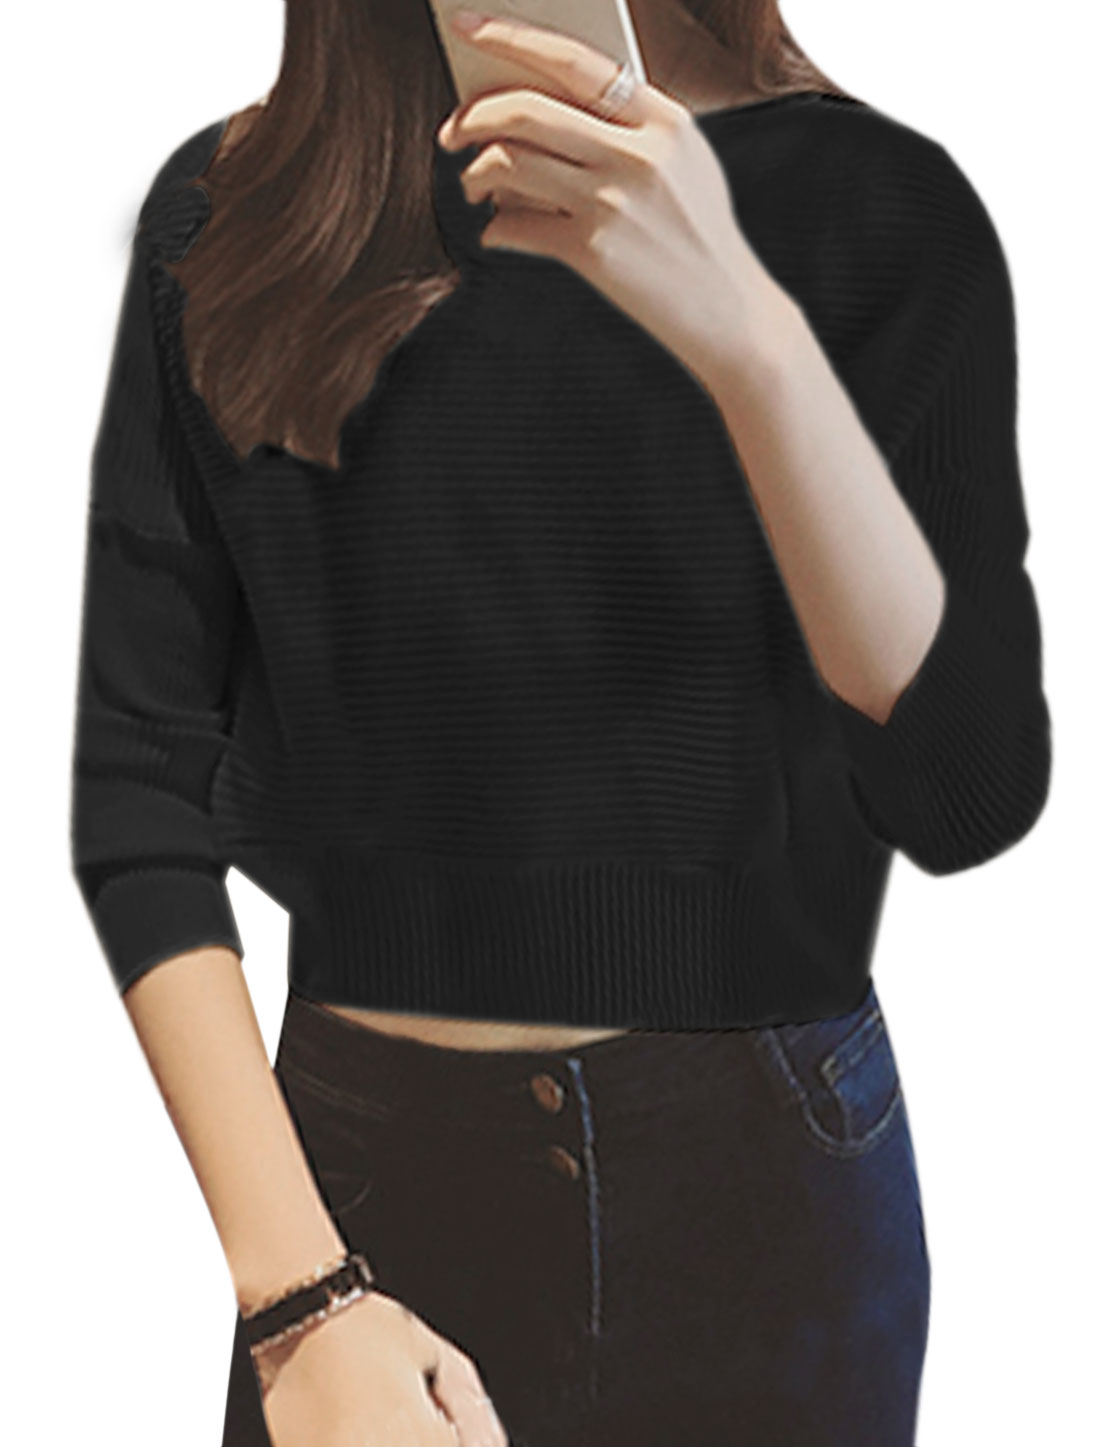 Women Bracelet Sleeves Textured Leisure Cropped Pullover Black XS